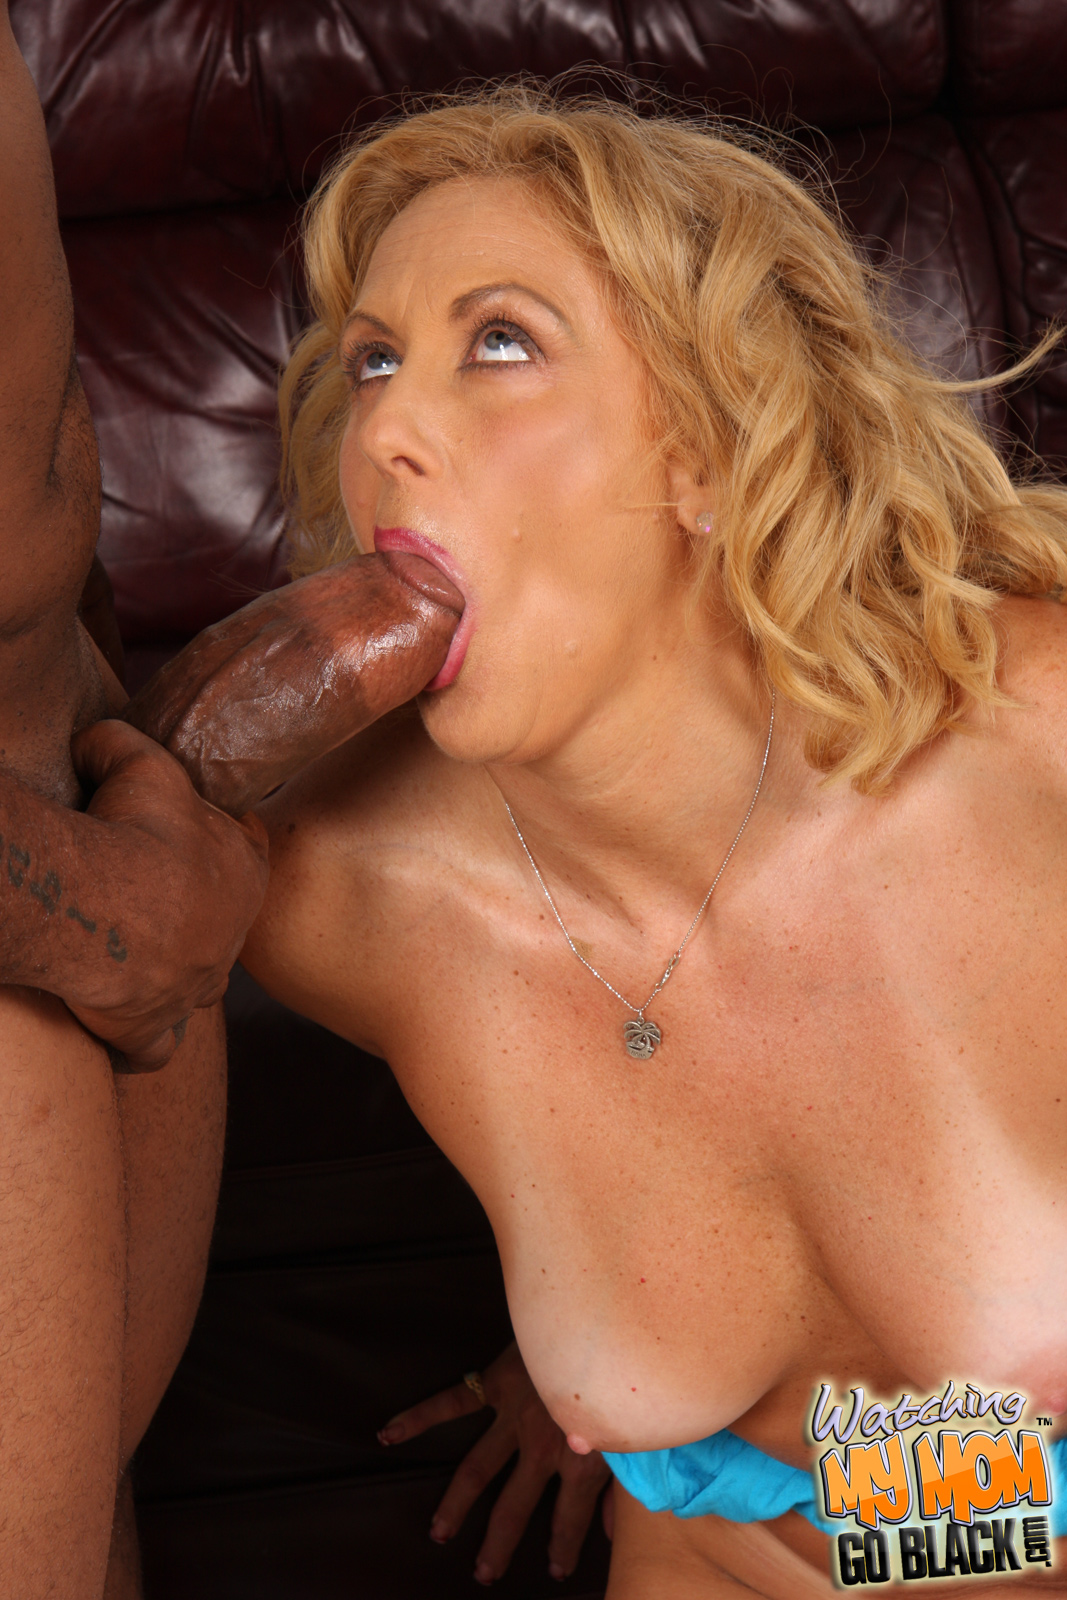 xxx man fingering girl